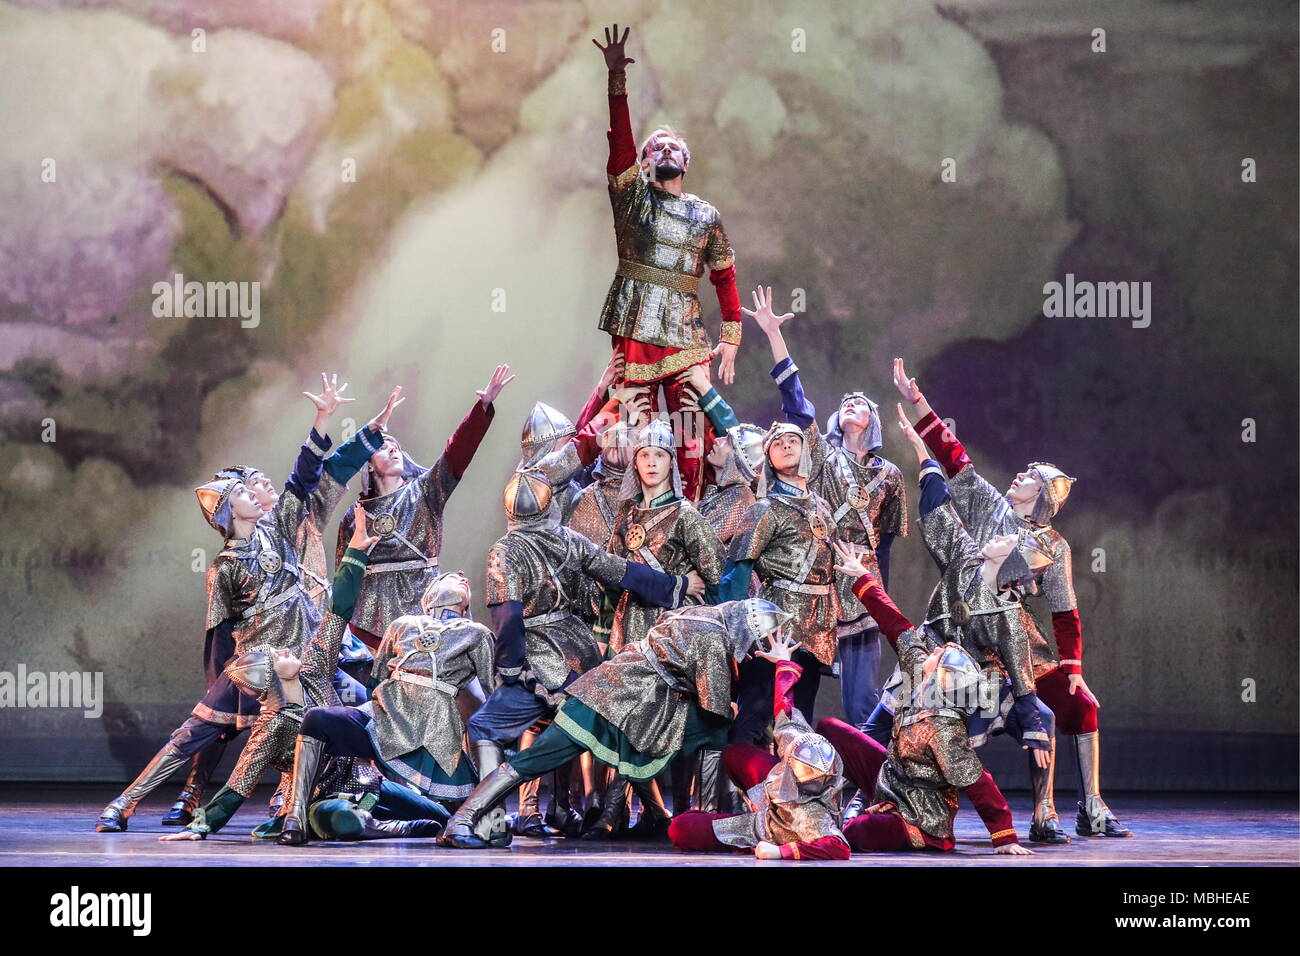 MOSCOW, RUSSIA - APRIL 10, 2018: Ballet dancer Roman Andreikin (top) and young performers in a scene from the performance 'Prince Vladimir the Mighty Sun: Quest for Prince Vladimir', on the New Stage of the Bolshoi Theatre; Credit: ITAR-TASS News Agency/Alamy Live News - Stock Image